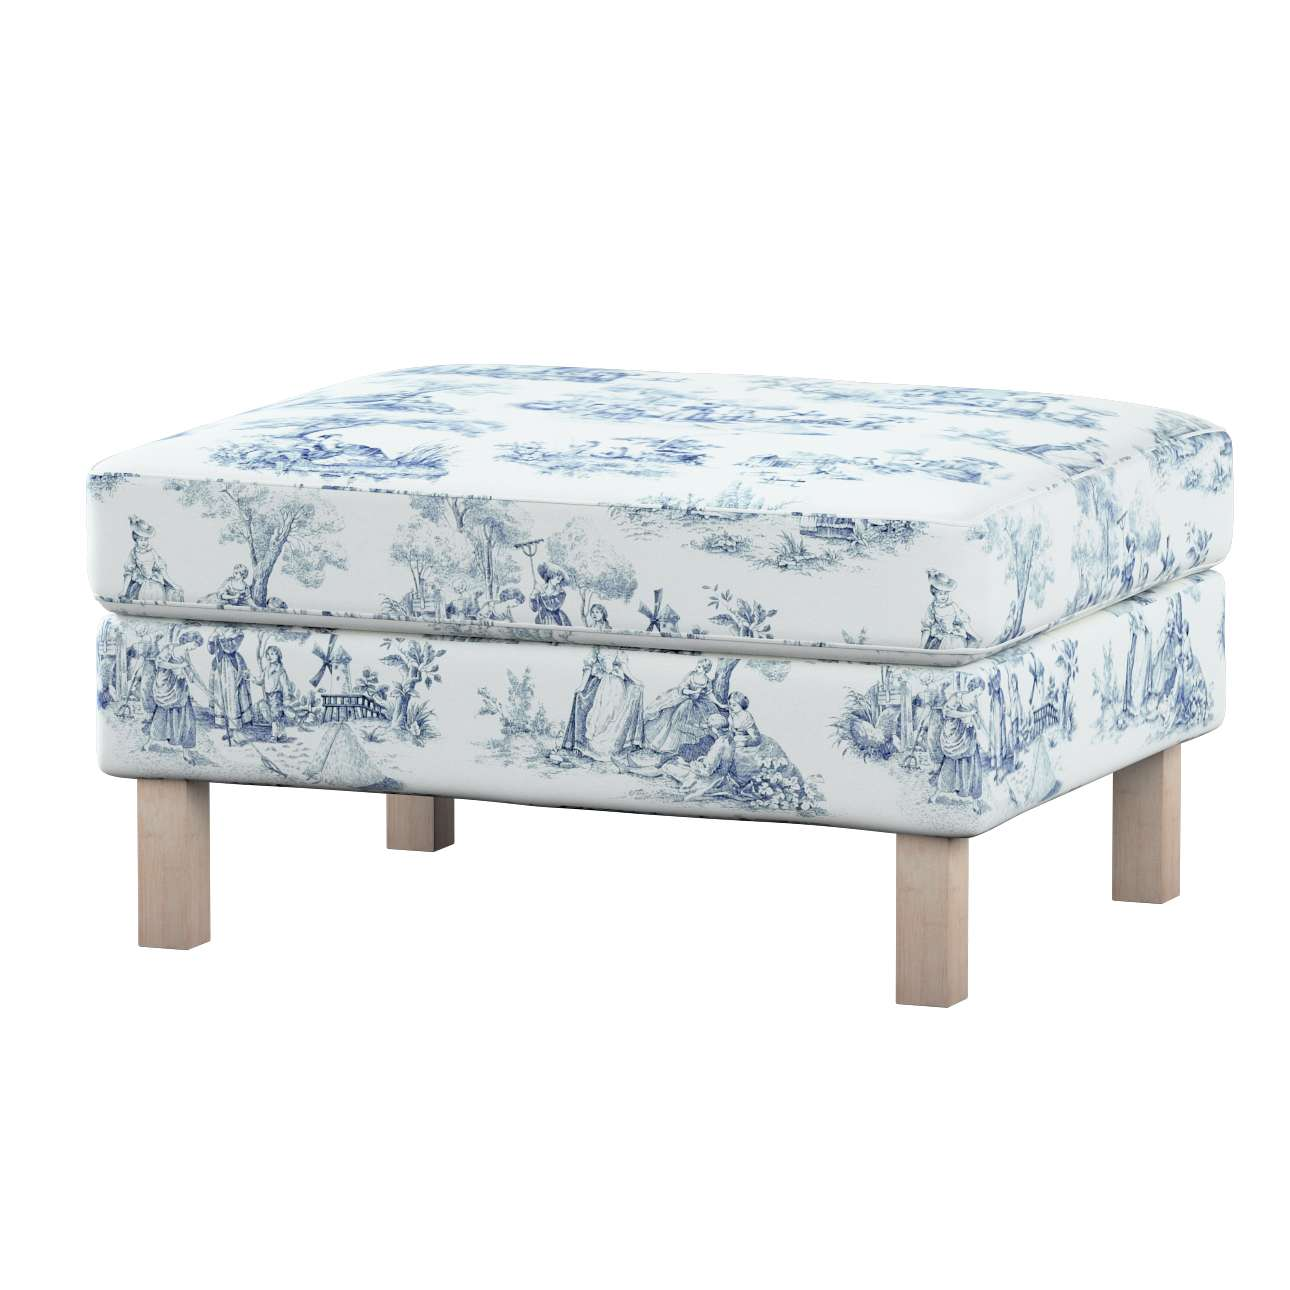 Karlstad footstool cover Karlstad footstool cover in collection Avinon, fabric: 132-66